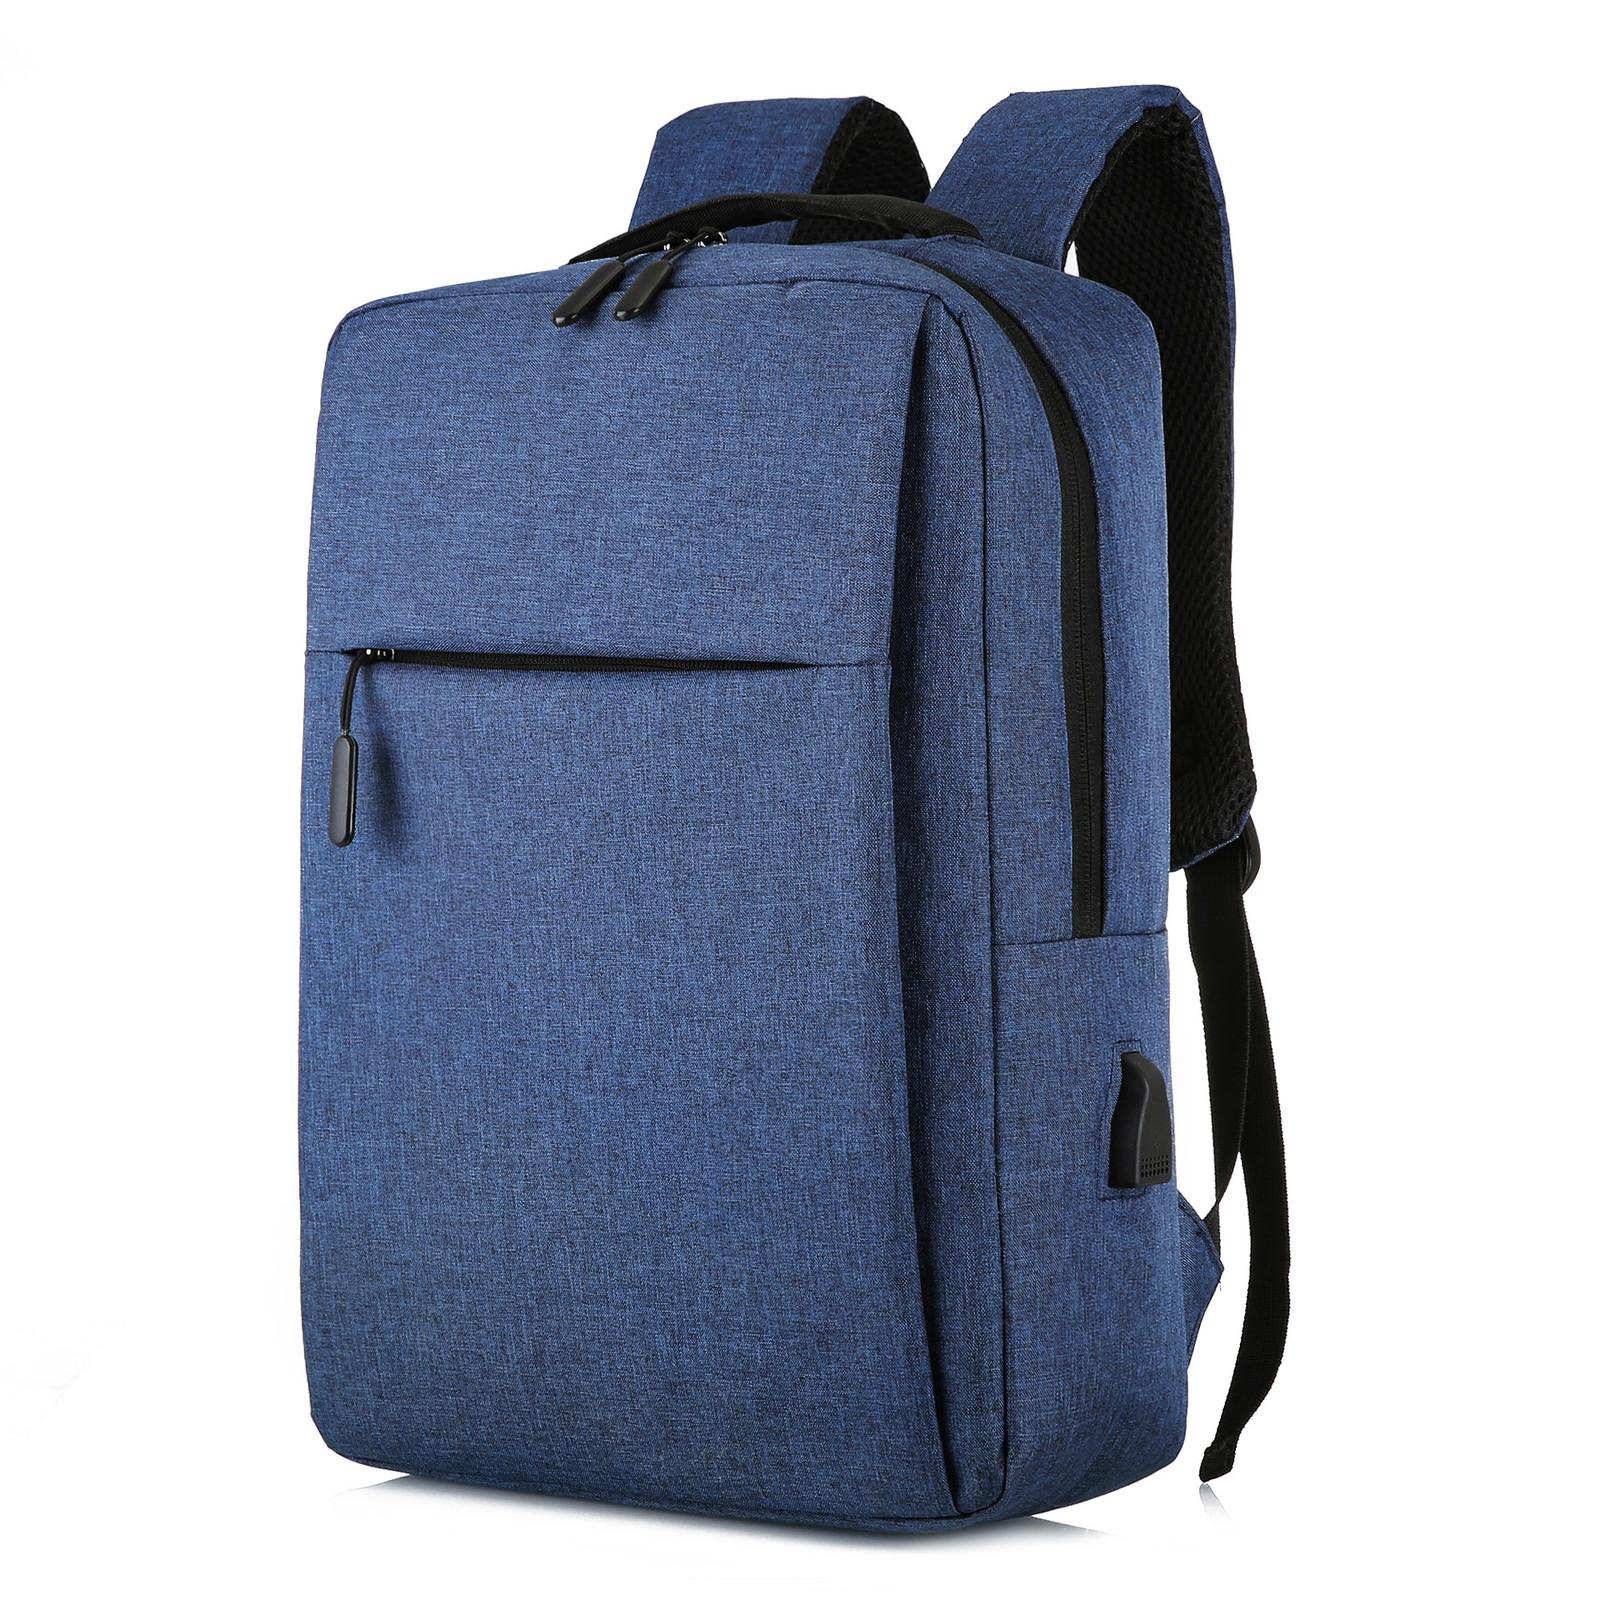 computer New Xiaomi leisure backpack USB business charging multifunctional bag student schoolbag